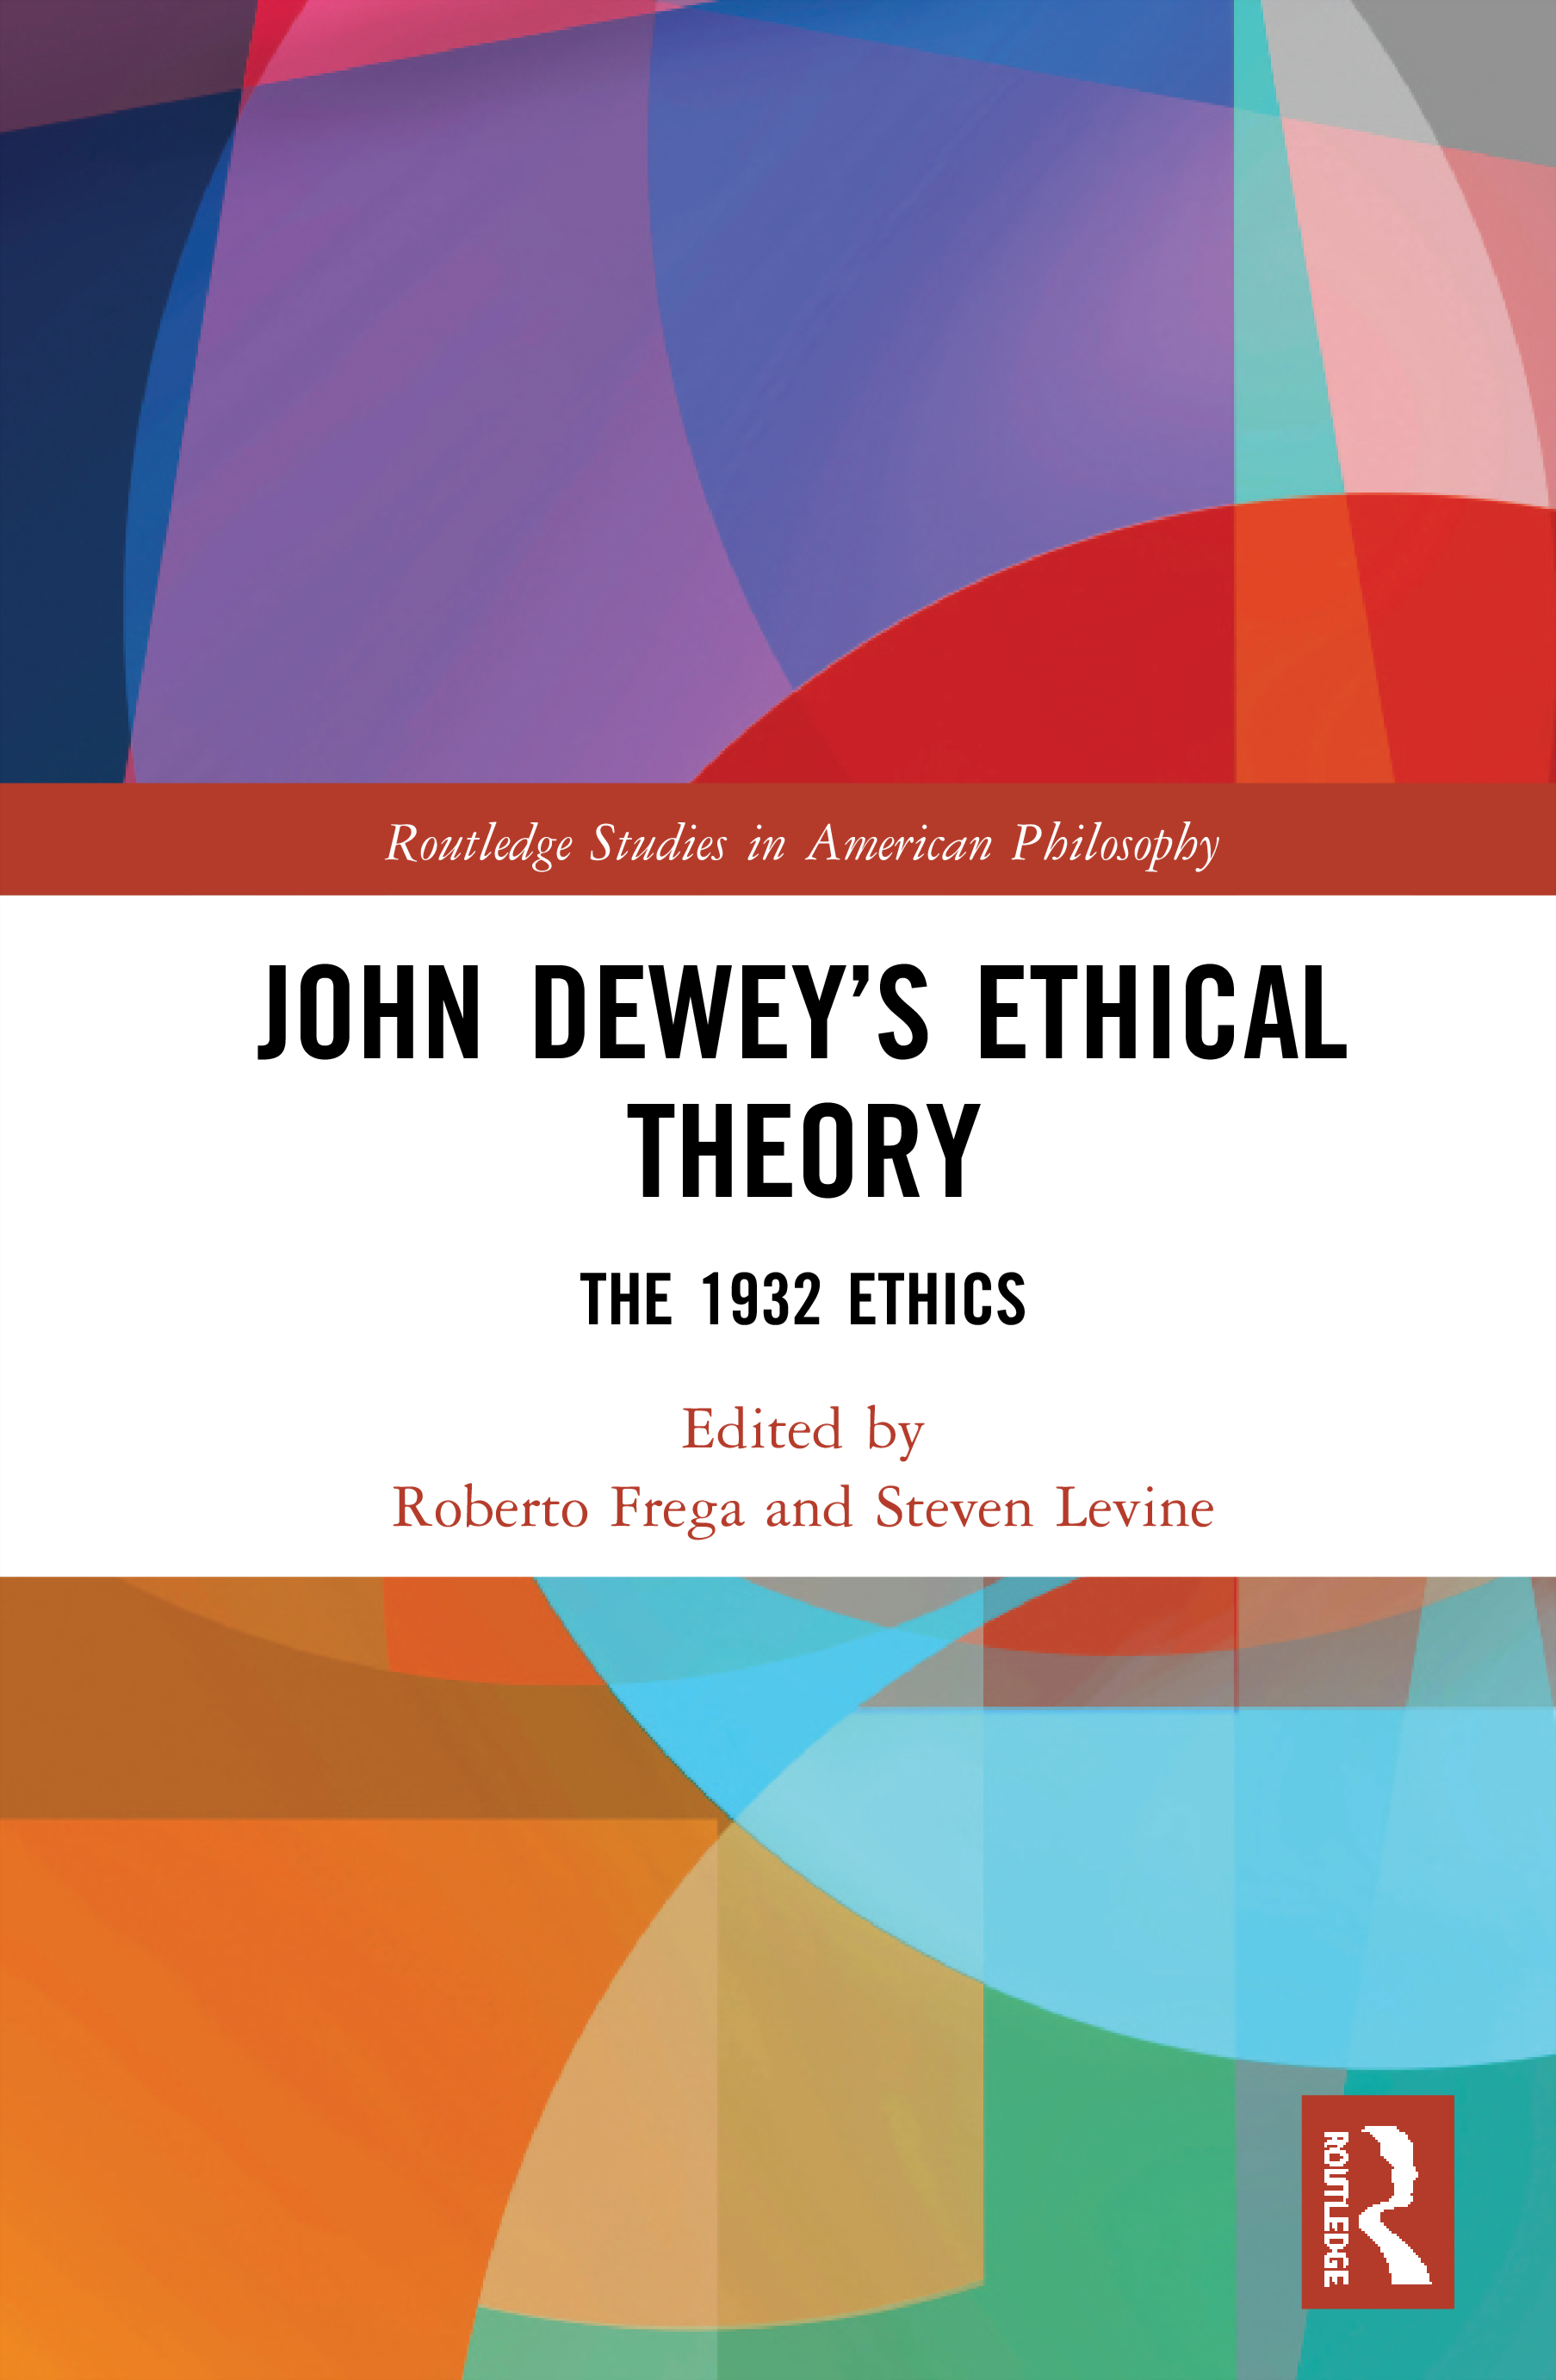 Duties and the Ethical Space of Claims in Dewey's 1932 Ethics